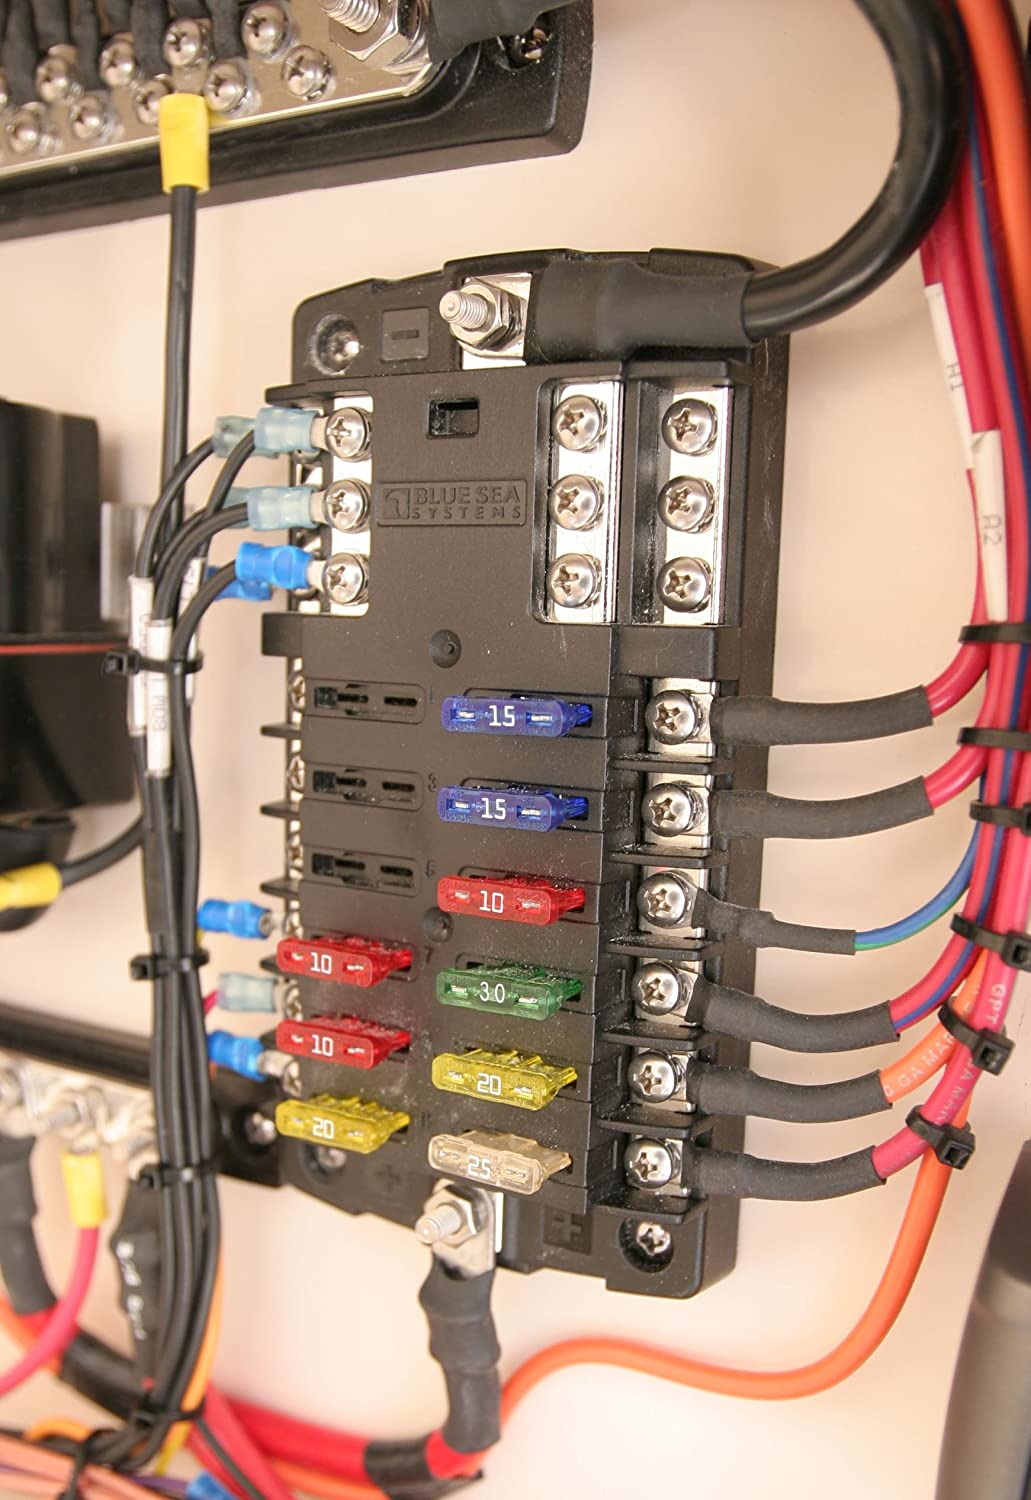 Amazon.com : Blue Sea Systems ST Blade Fuse Block - 12 Circuits with  Negative Bus & Cover : Fuse Block With Relay : Sports & OutdoorsAmazon.com